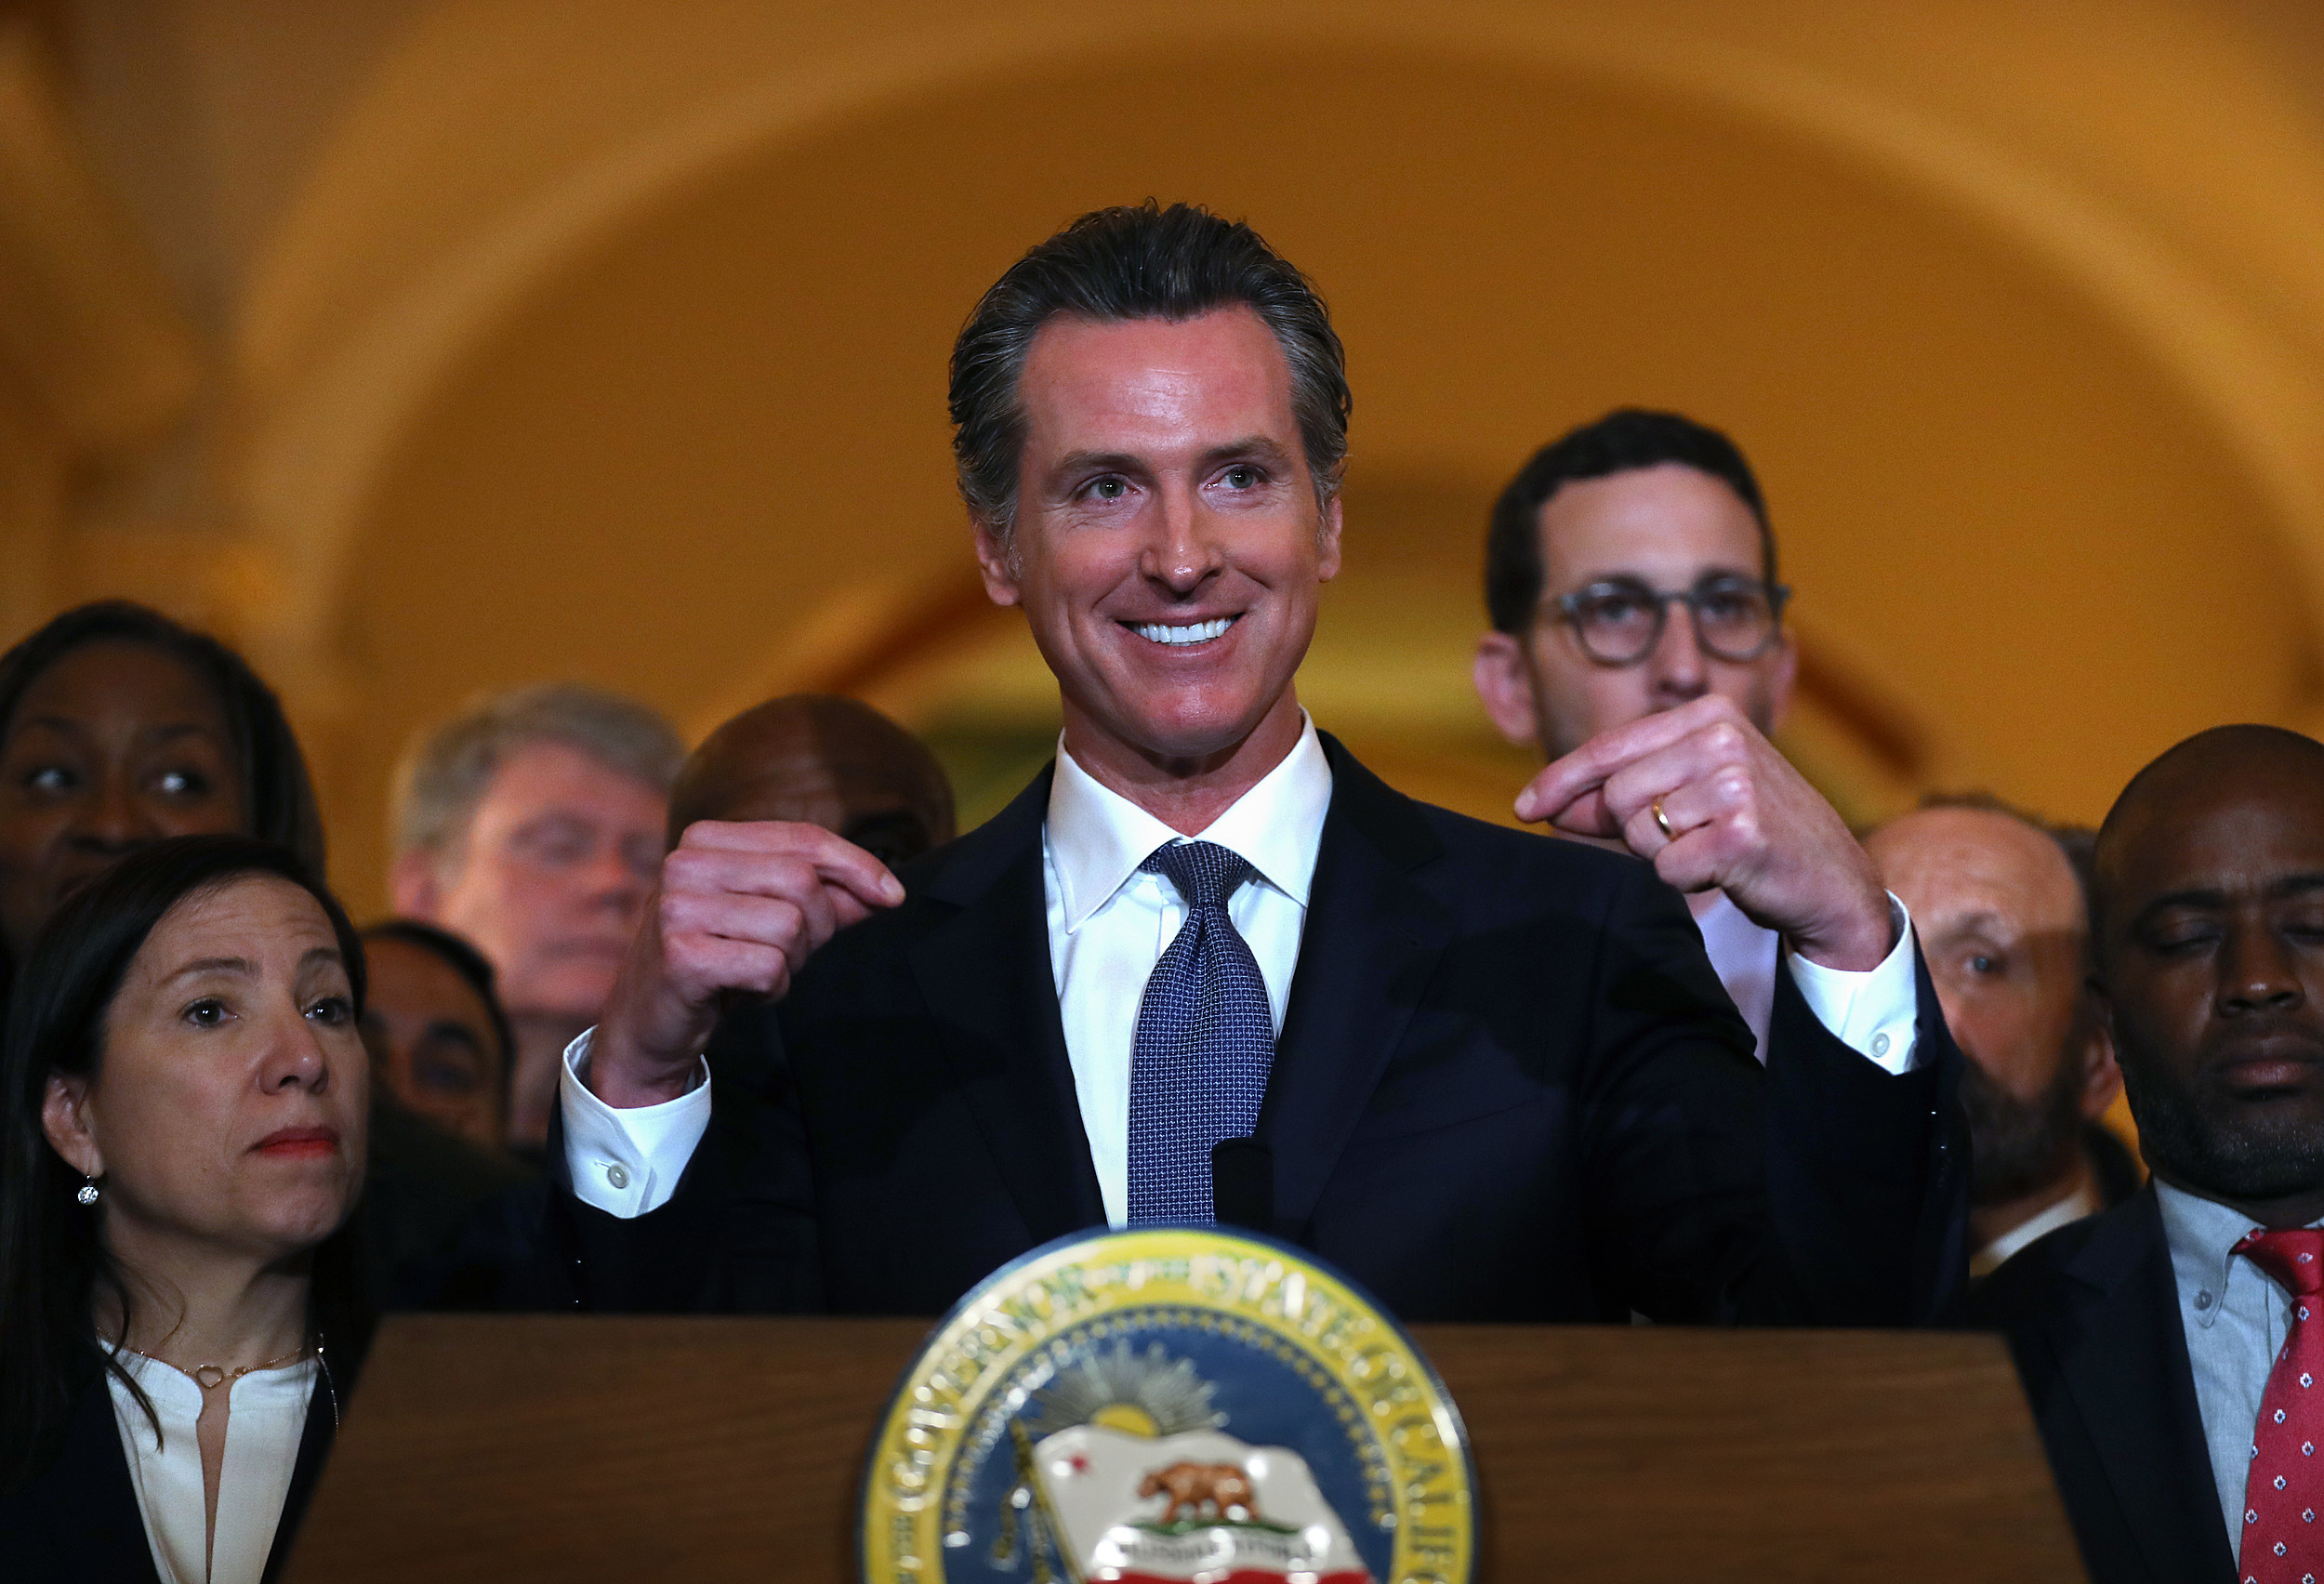 California Governor's Thanksgiving COVID-19 Rules are Hilarious